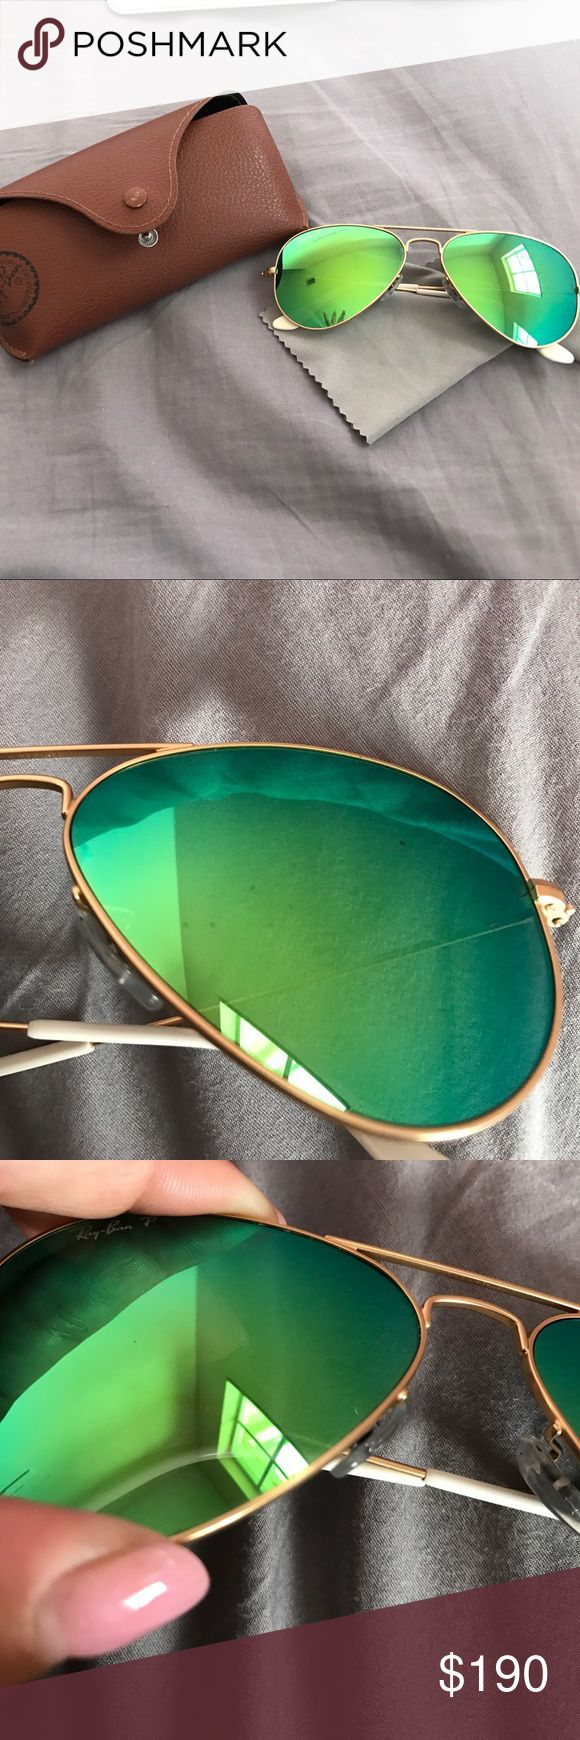 Customized ray-bans! Customized polarized aviator Ray bans! The smaller frame aviators. Green flash lens with matte gold frame! No scratches just black specs that are pictured! Ray-Ban Accessories Glasses